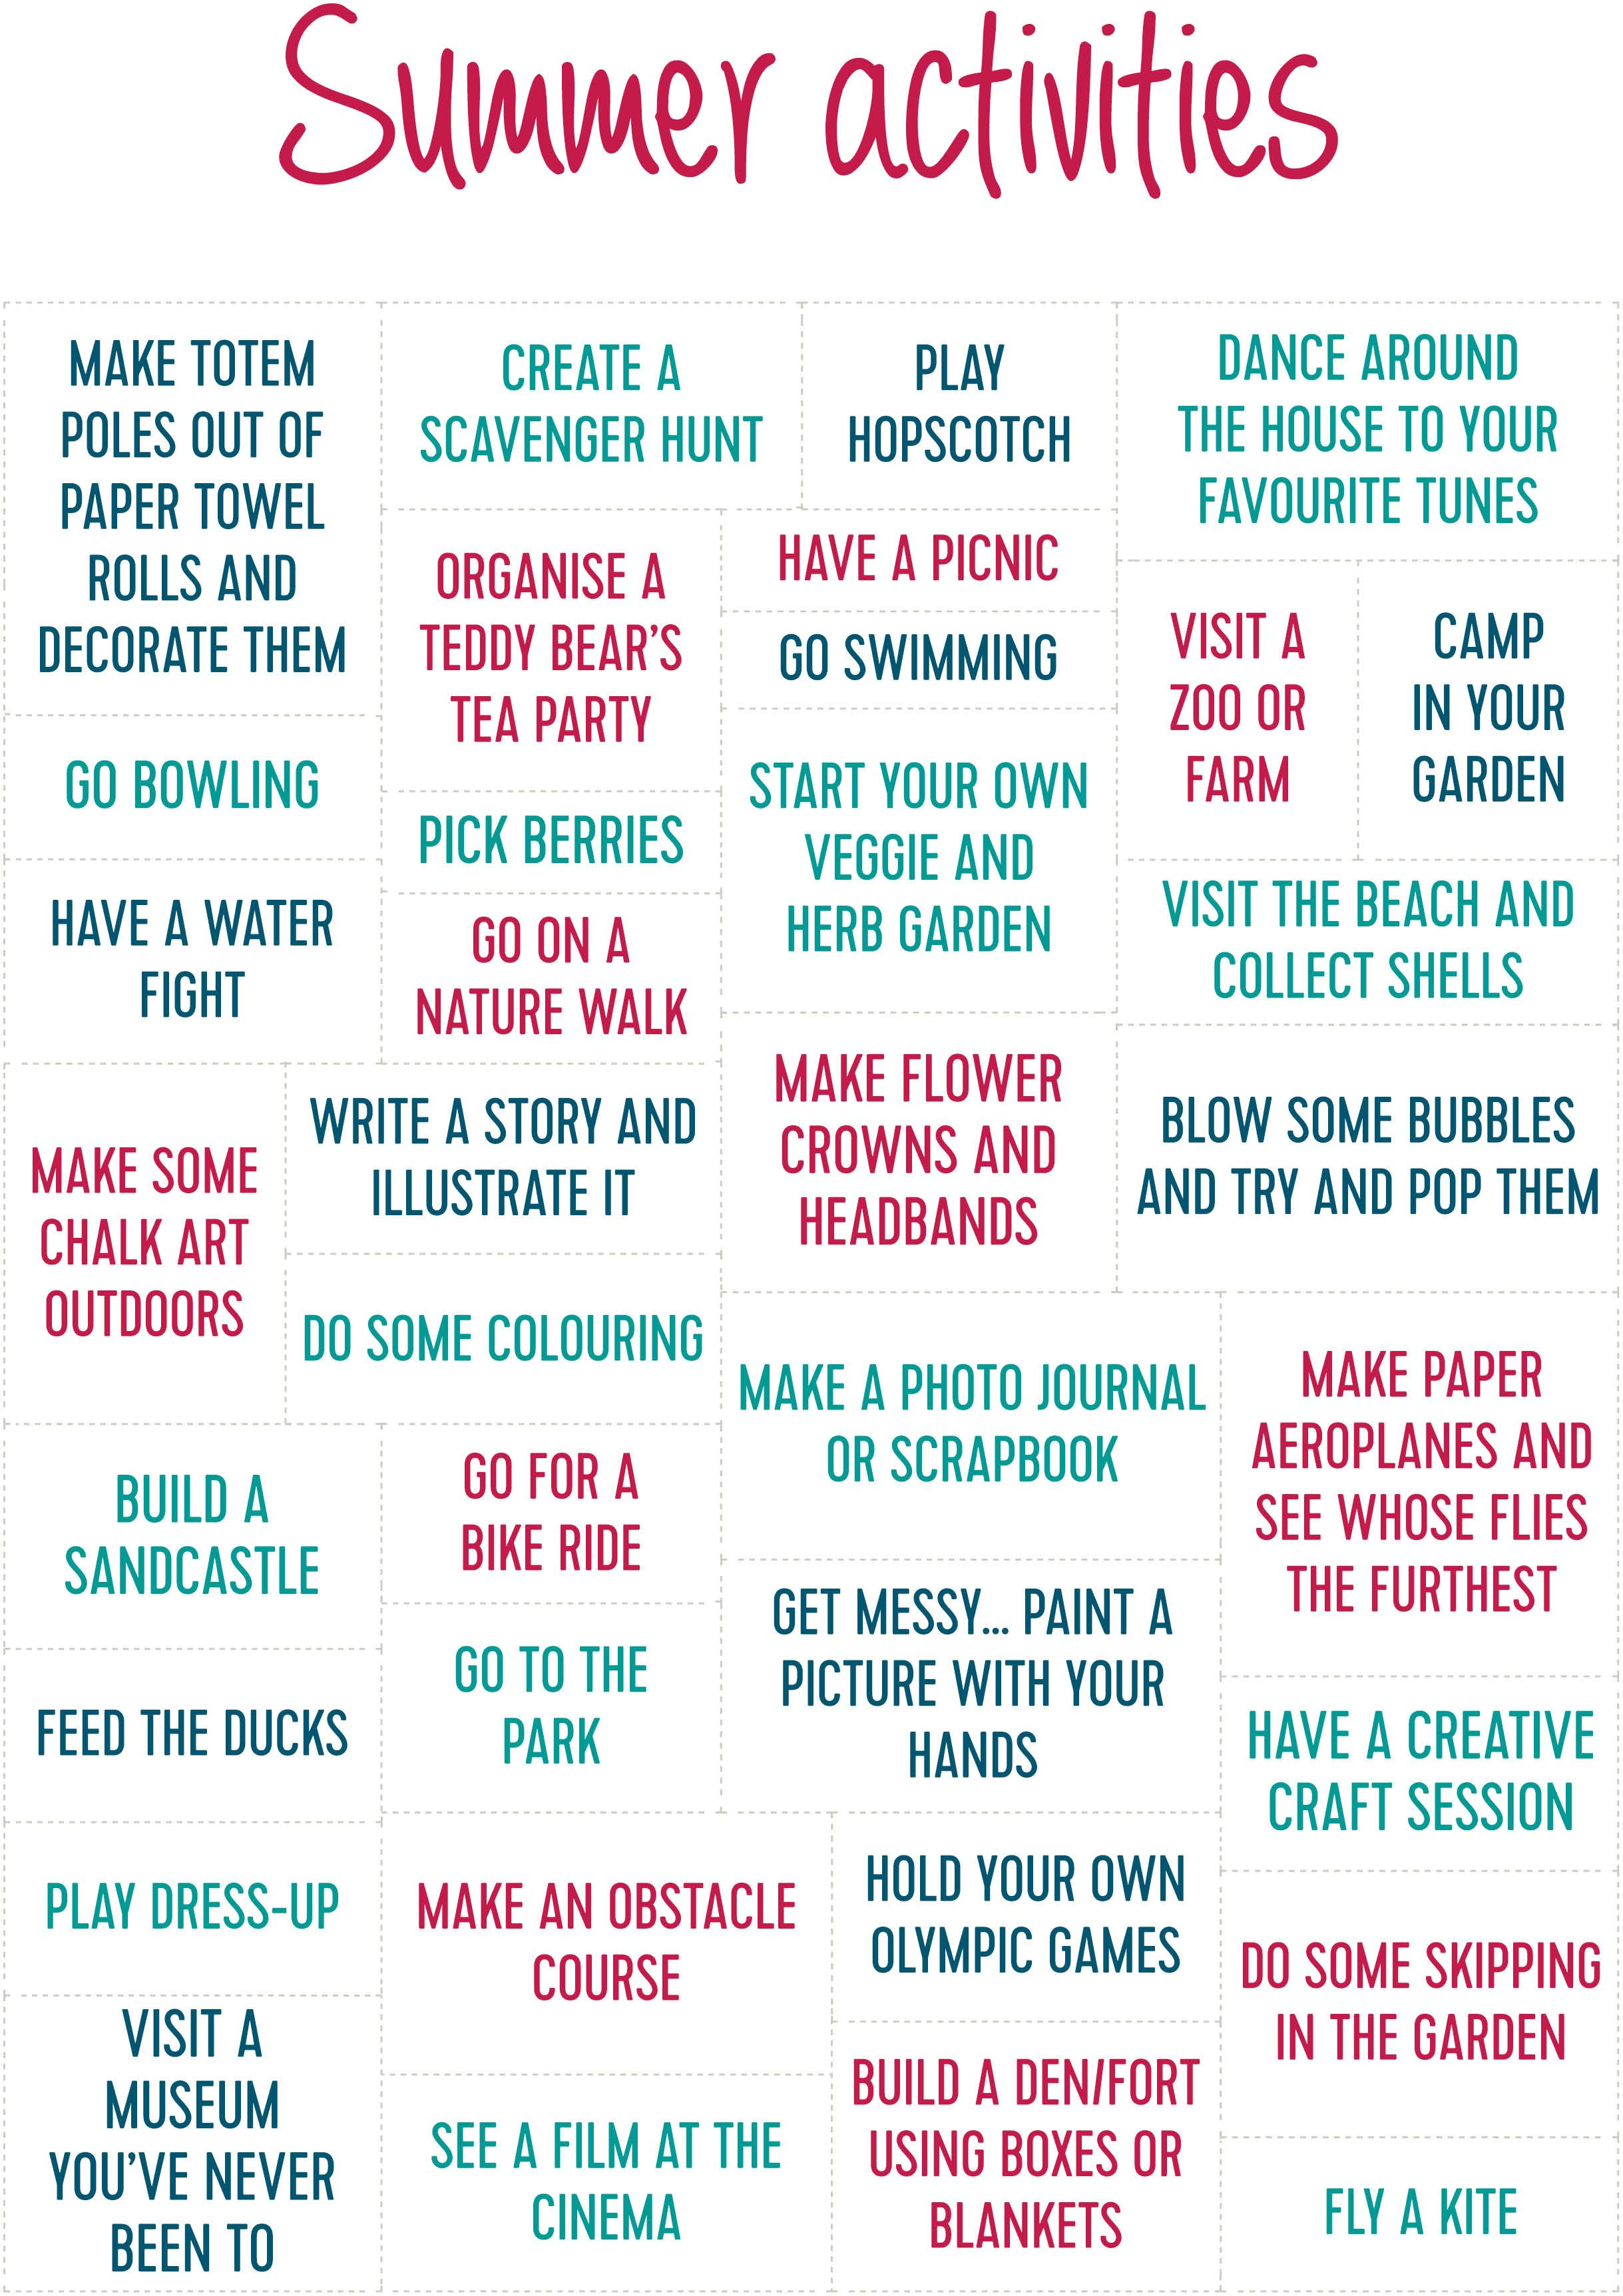 50 Activities To Keep The Kids Busy This Summer